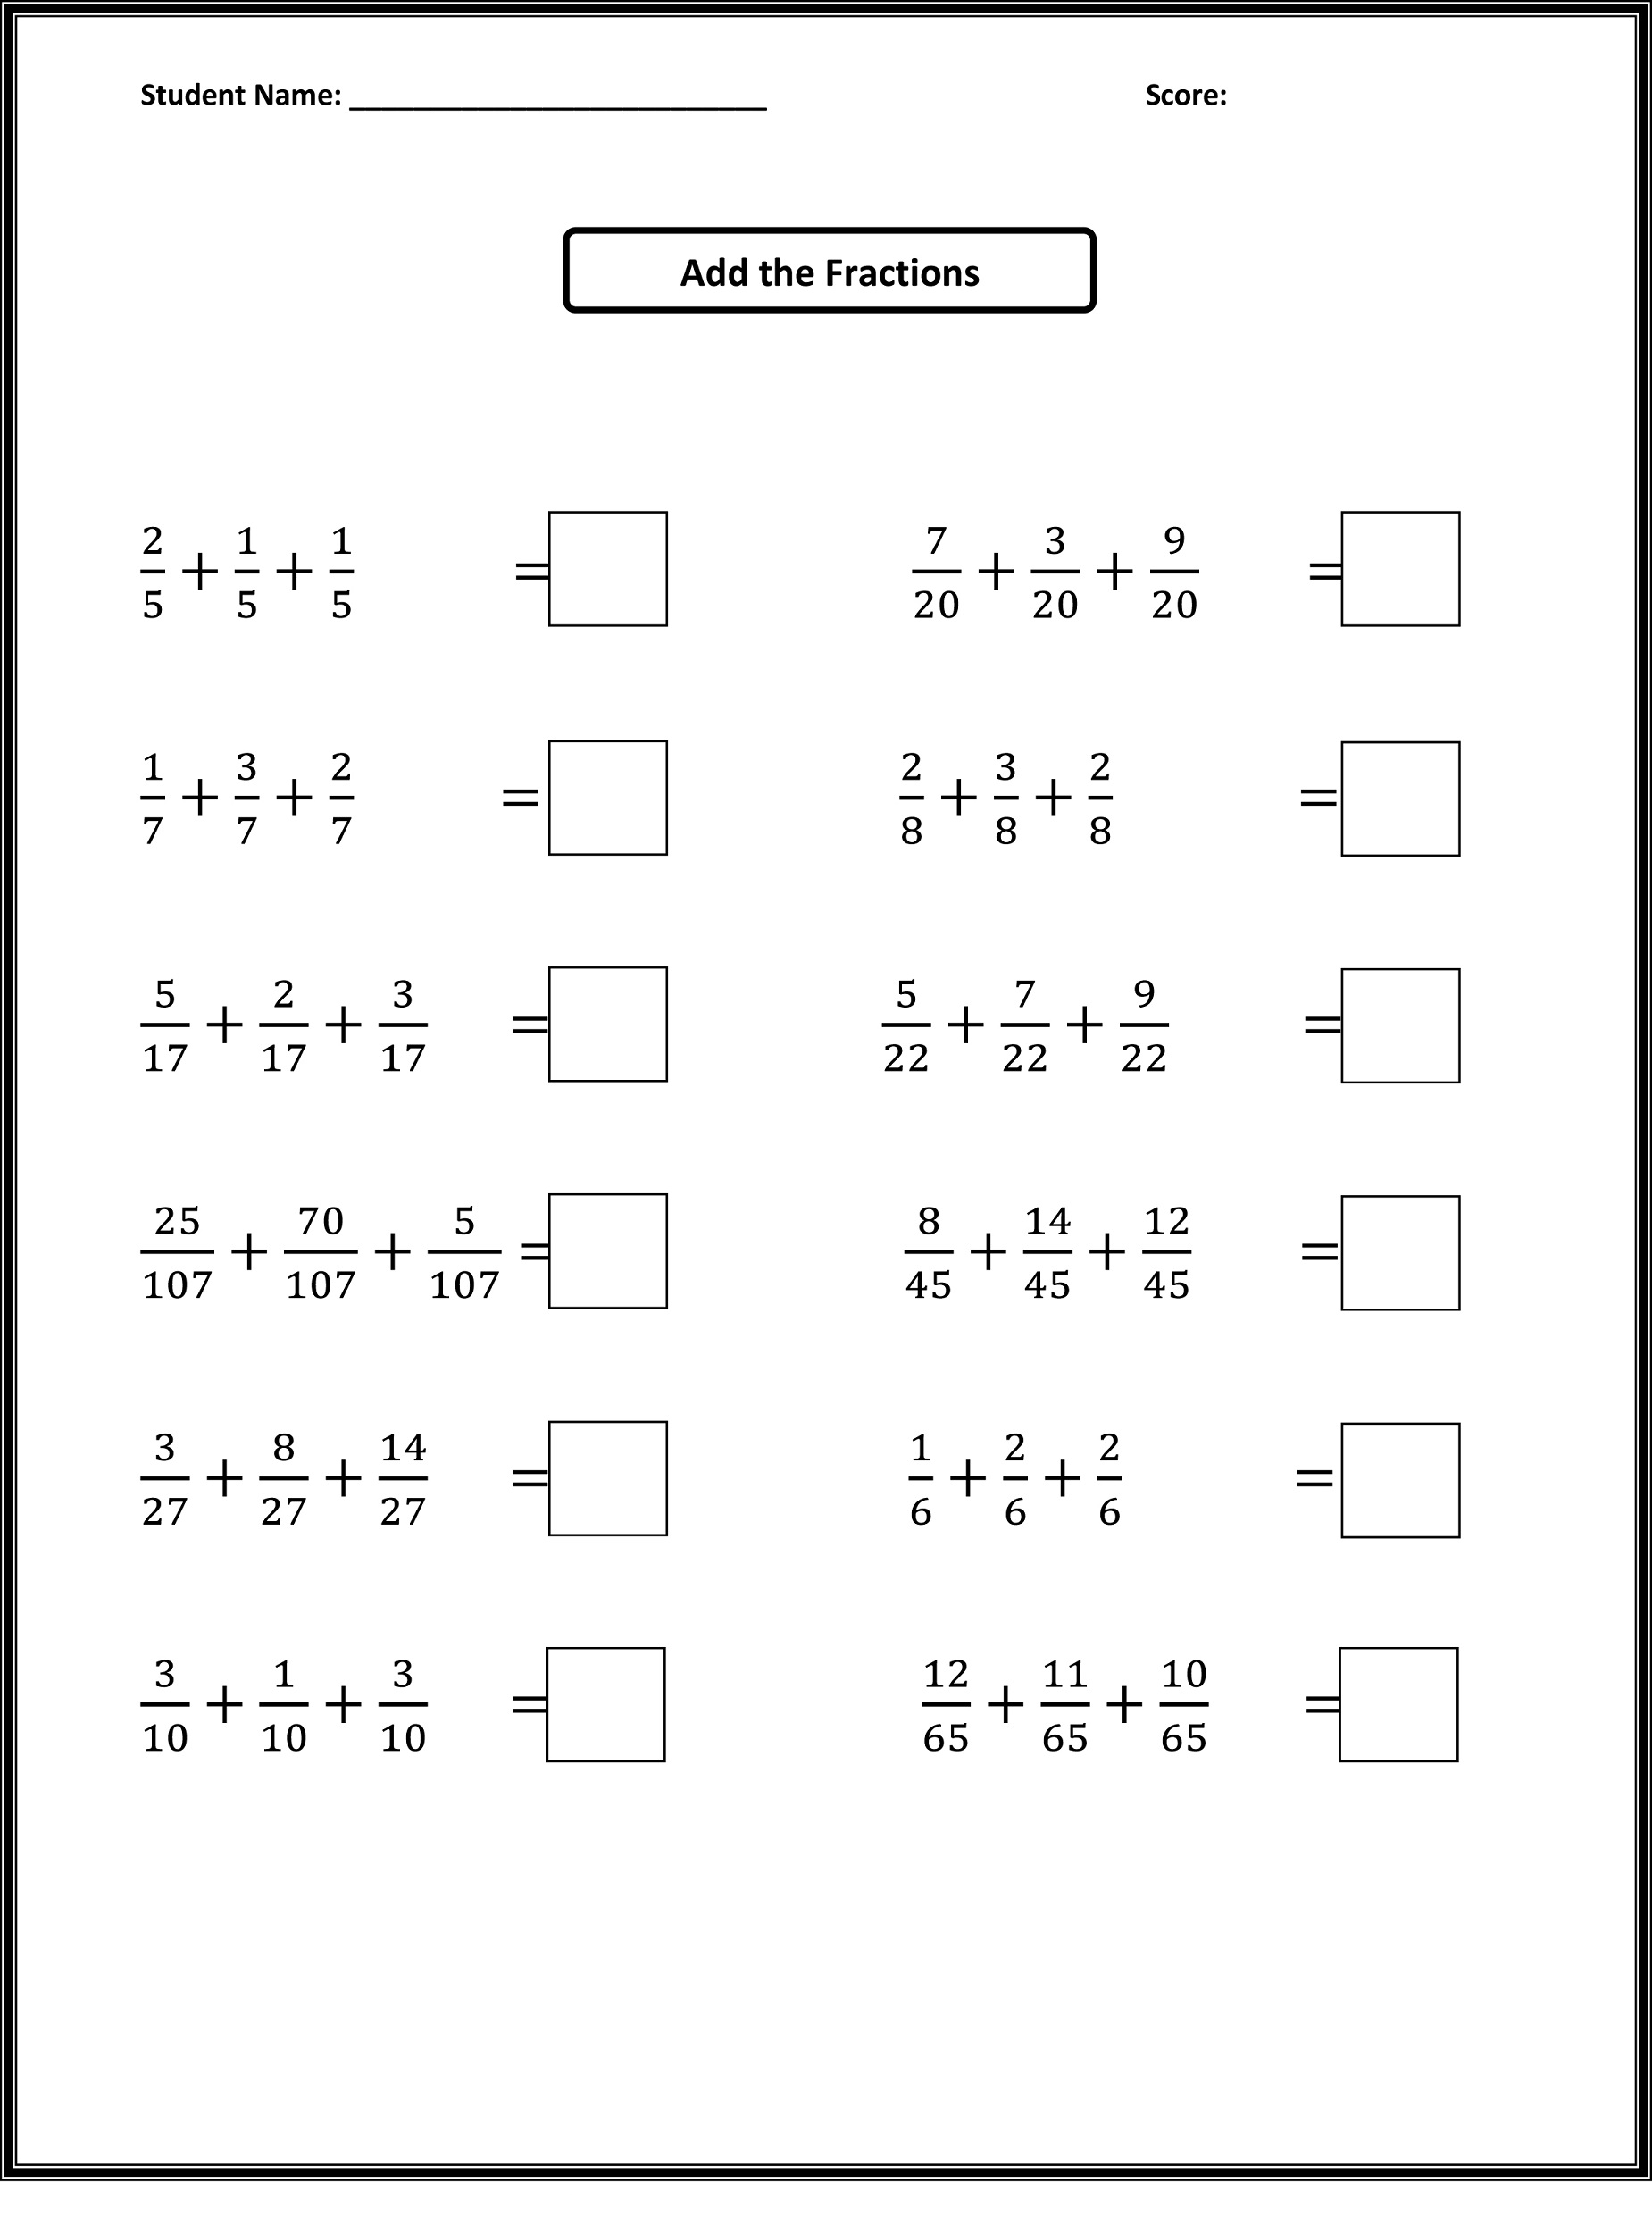 Math Worksheets Printable From The Salamanders Math Best Free Printable Worksheets